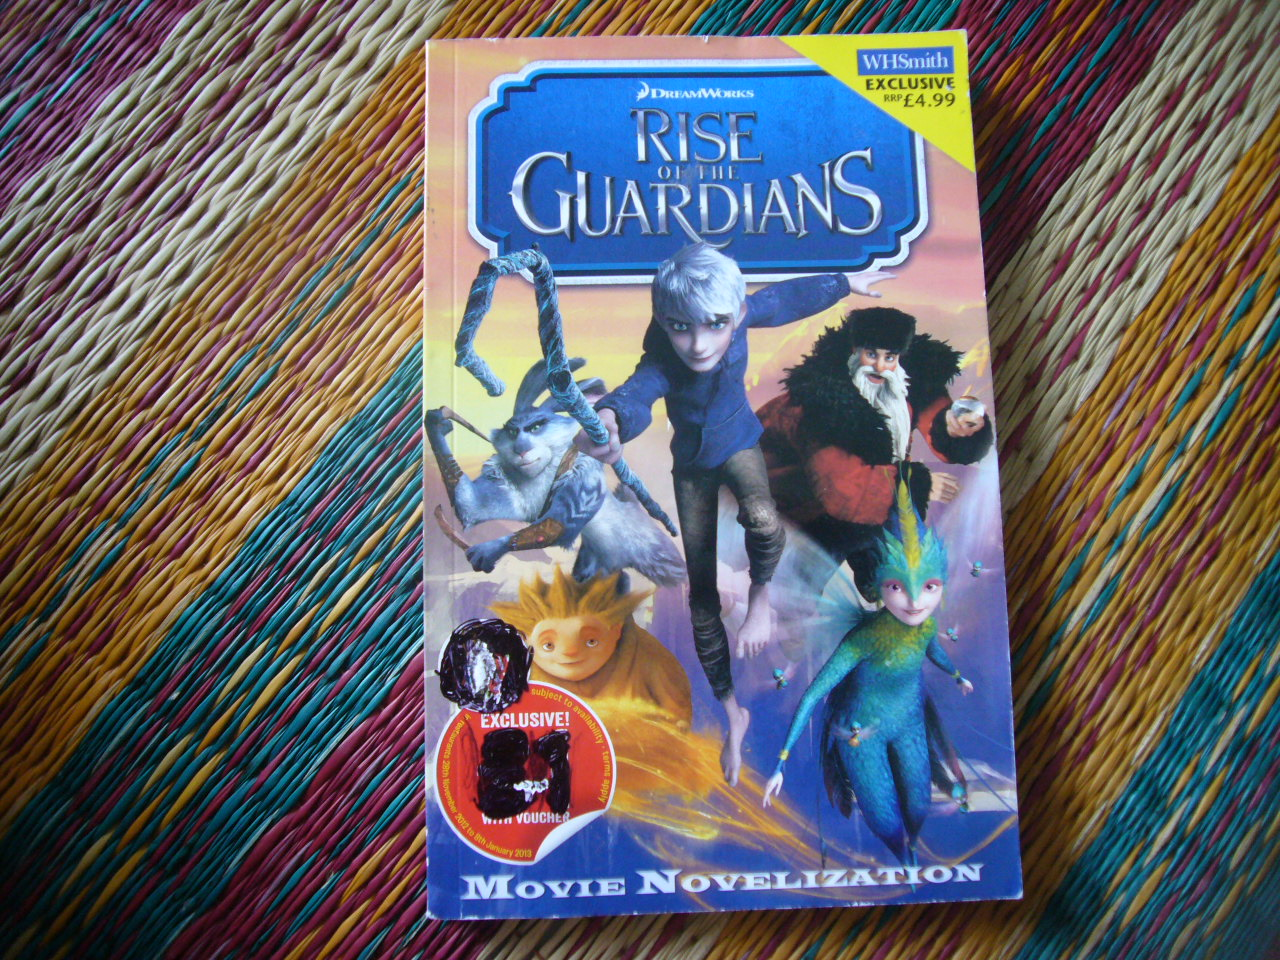 Rise of the Guardians (DreamWorks)